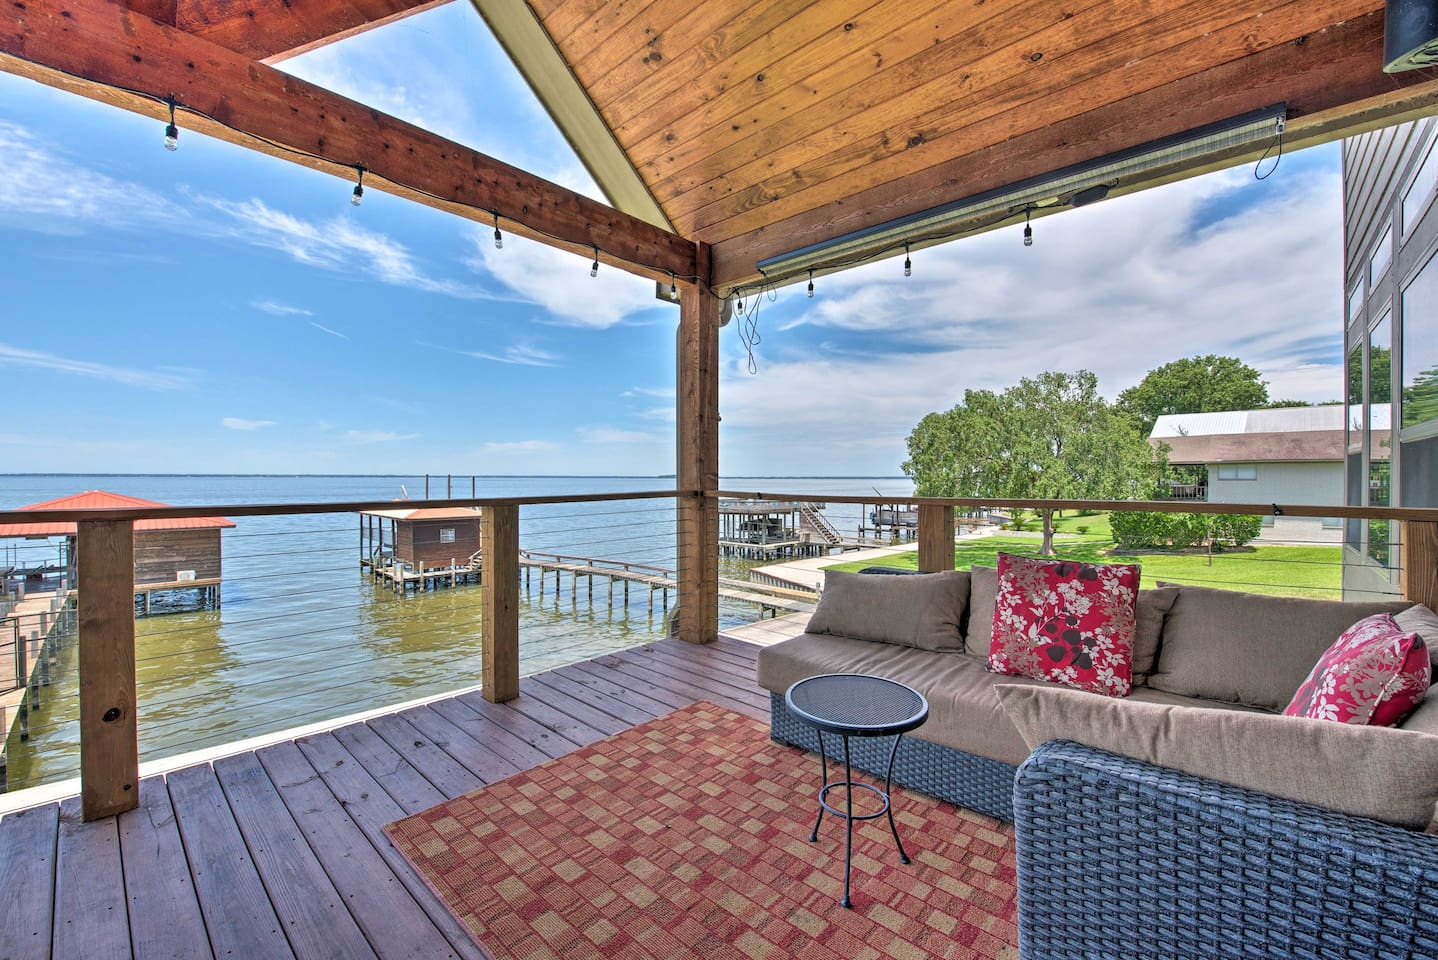 Enjoy a luxurious lakefront vacation on the shores of Lake Livingston!